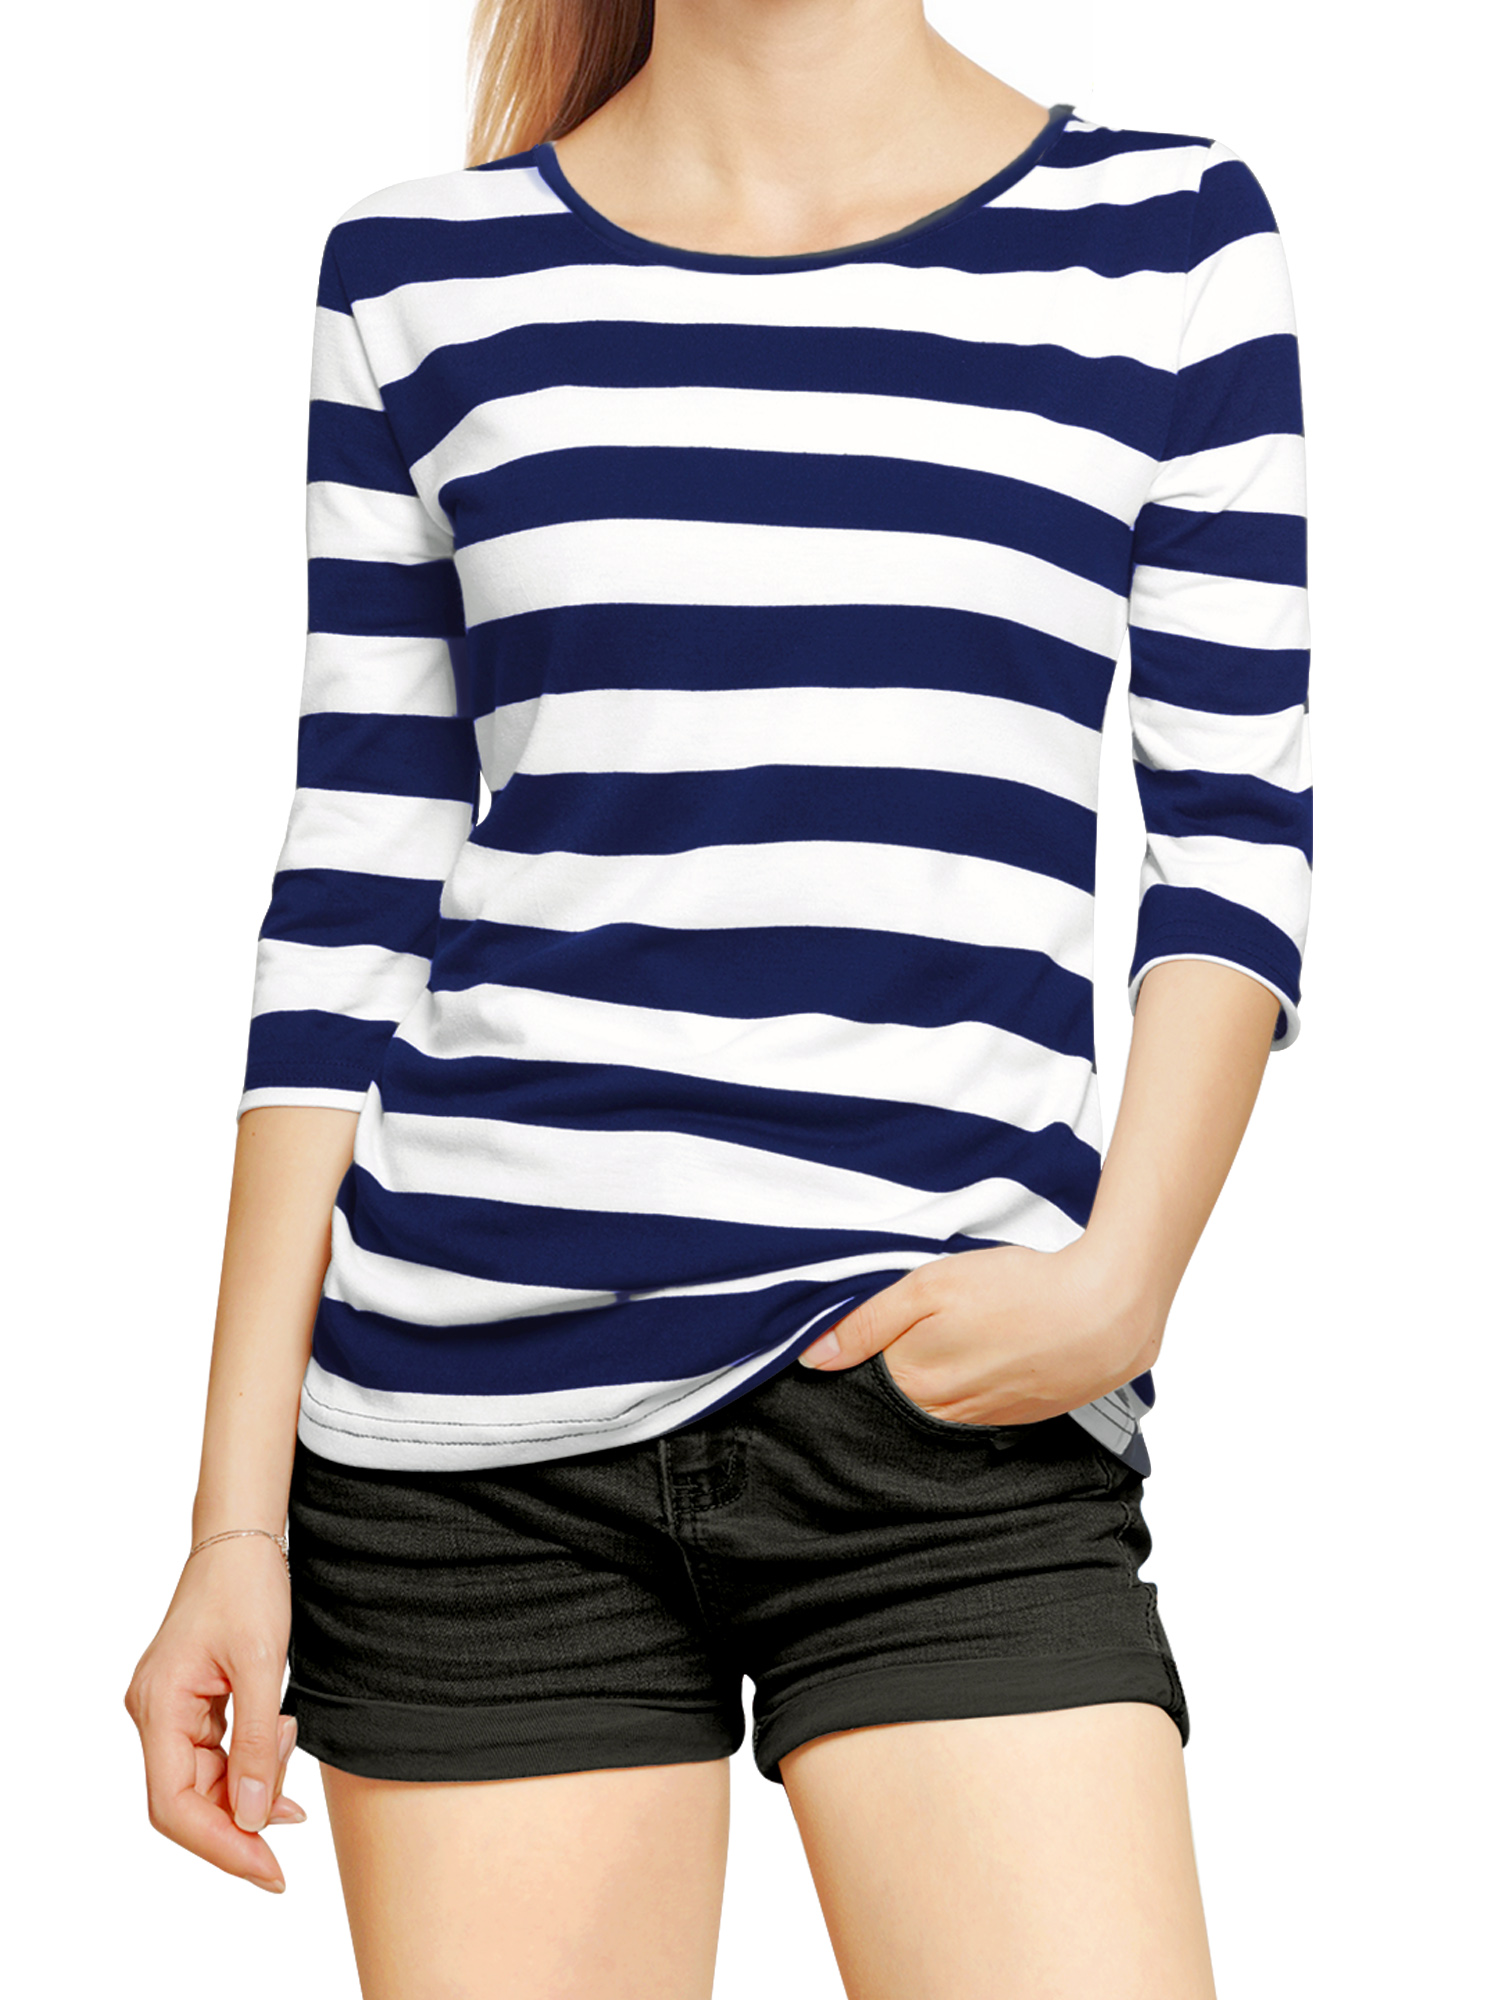 Women Half Length Sleeves Bold Striped Tee Shirt Dark Blue White M